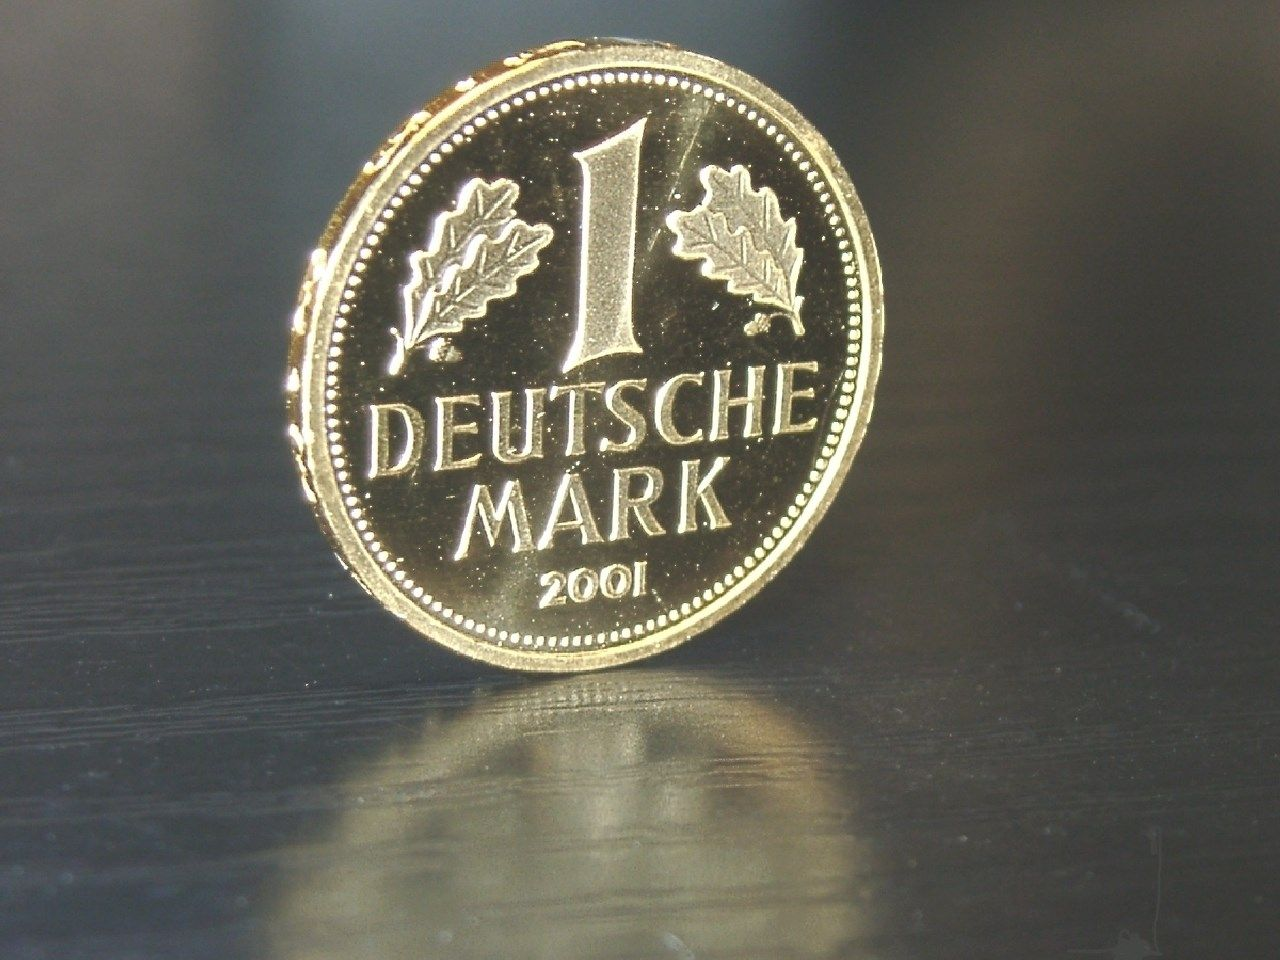 1280x960 wallpapers free deutsche mark (With images) The